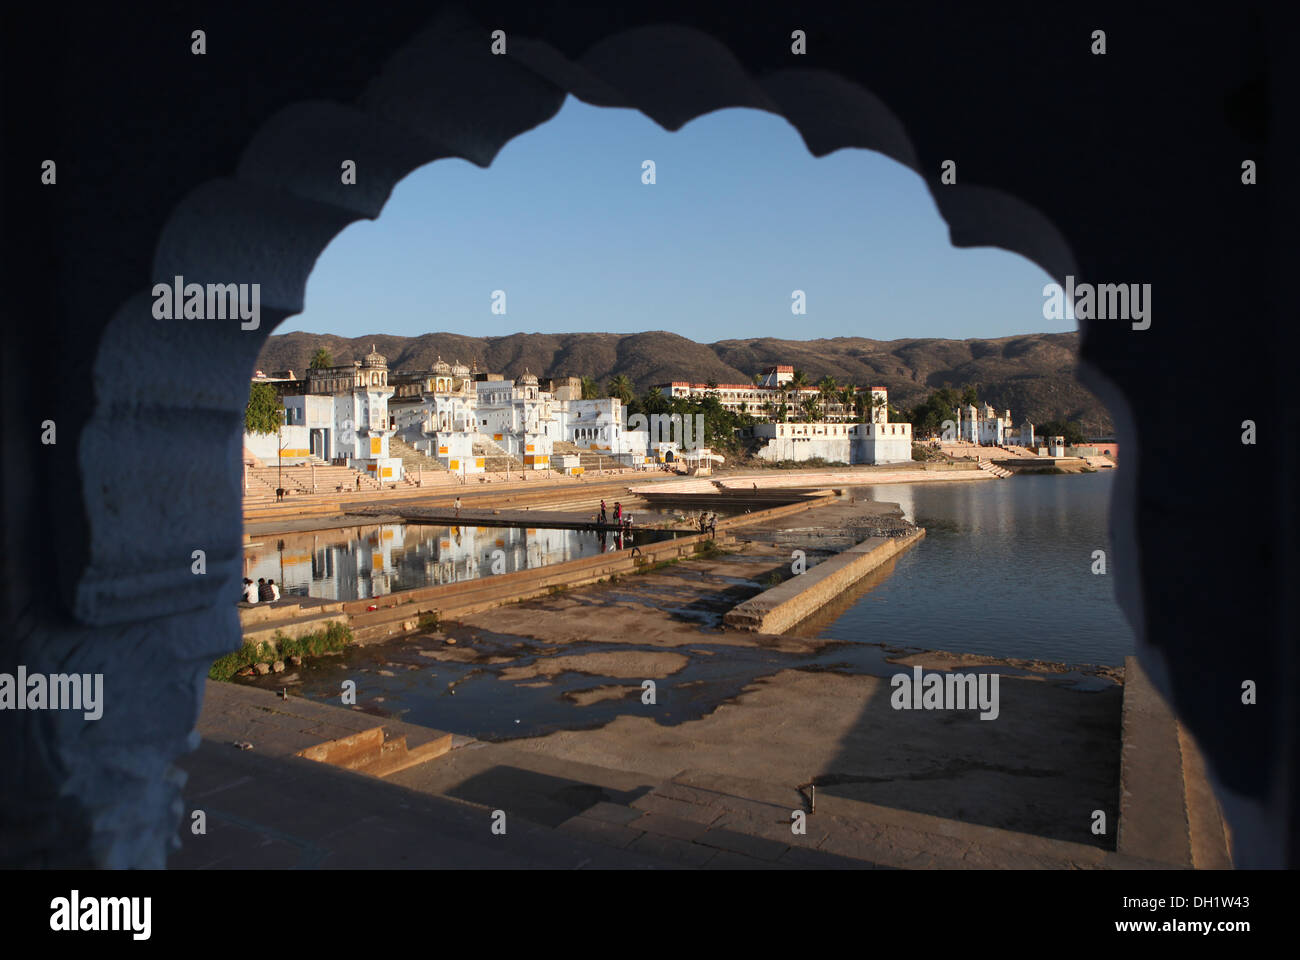 View across a ghat towards the holy city of Pushkar, Rajasthan, India, Asia - Stock Image